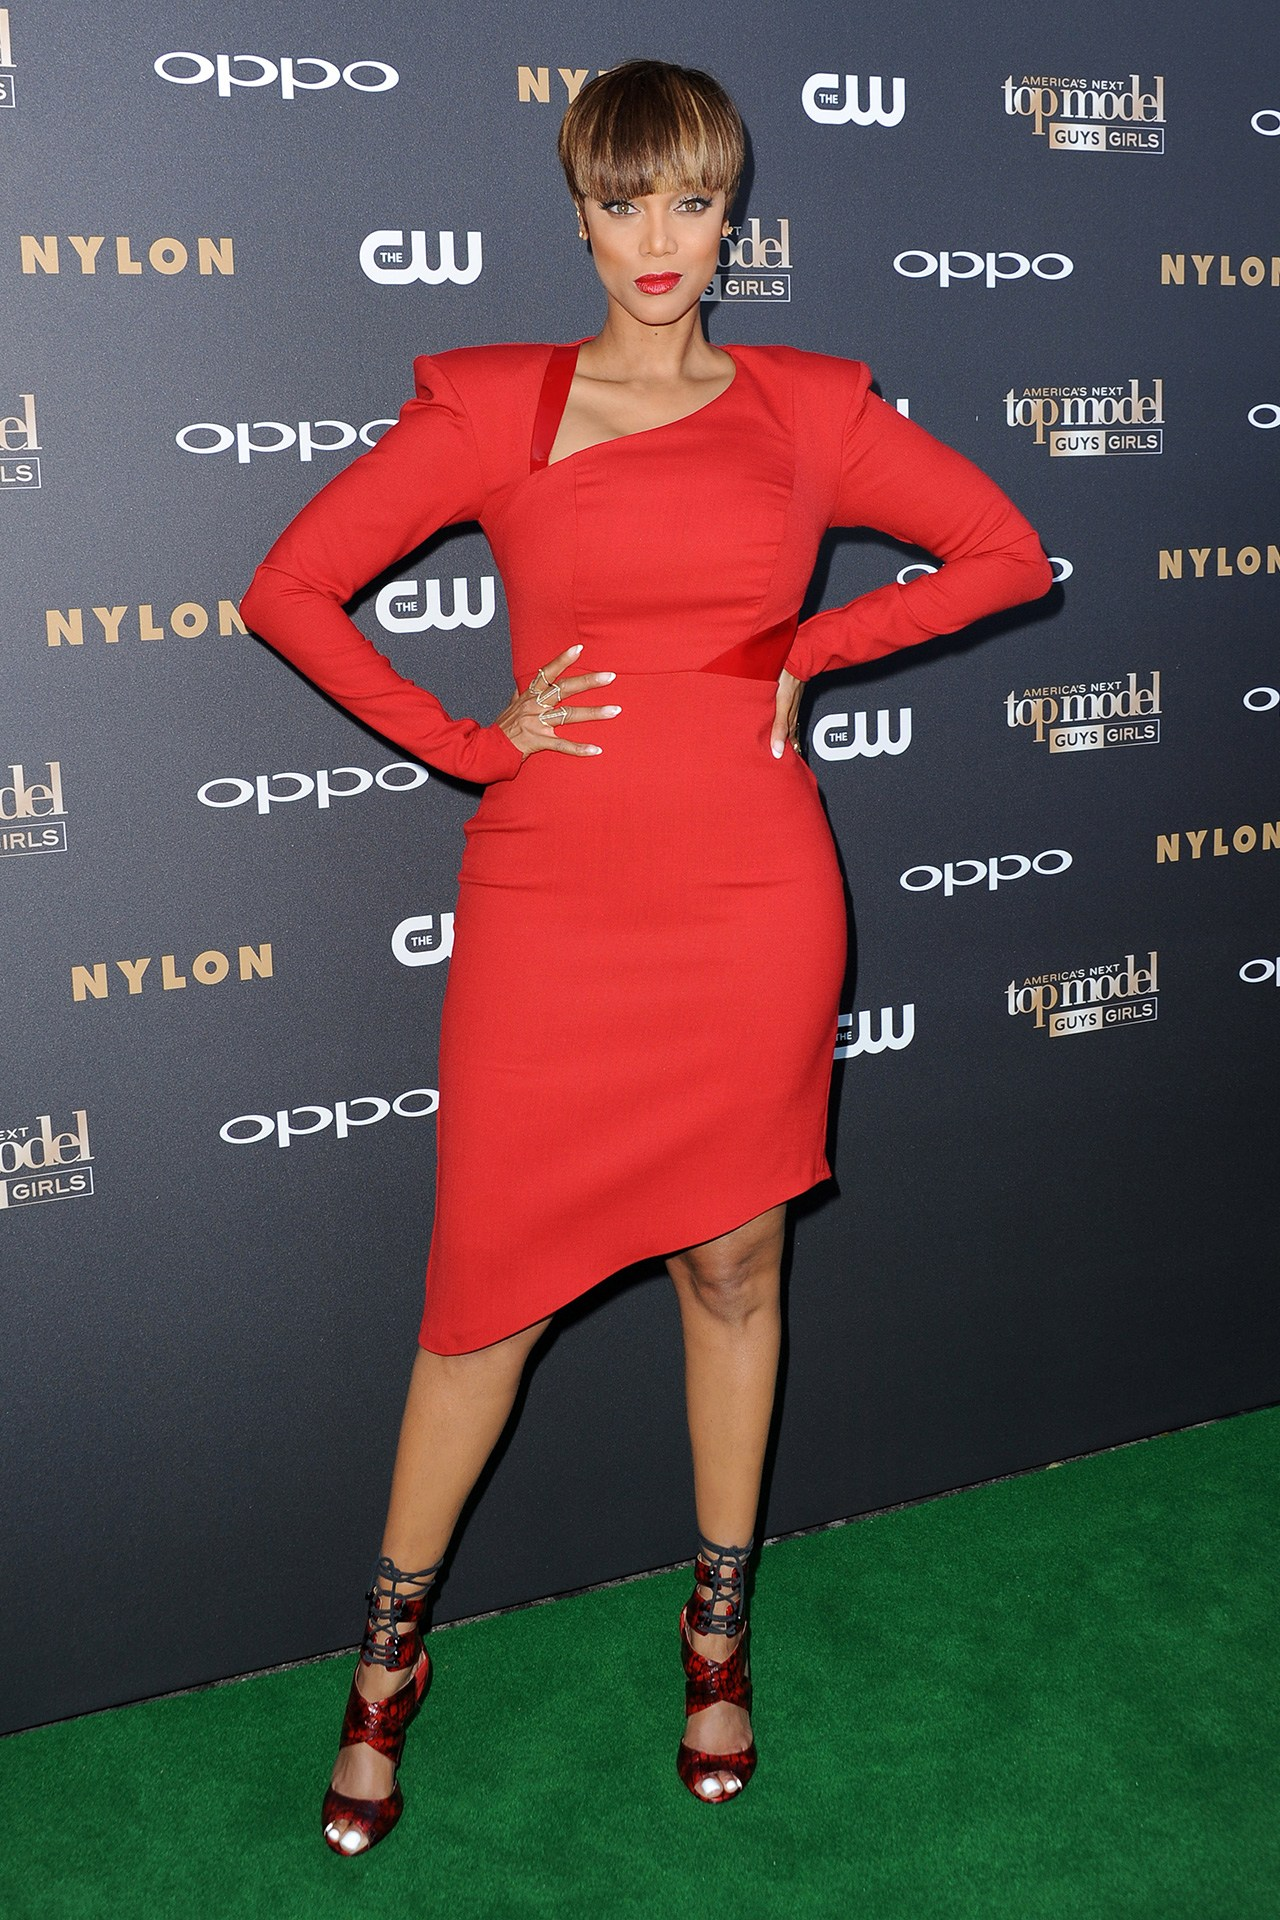 Model turned businesswoman, Tyra Banks, confirmed that this season would be the last for America's Next Top Model, closing with 22 seasons.